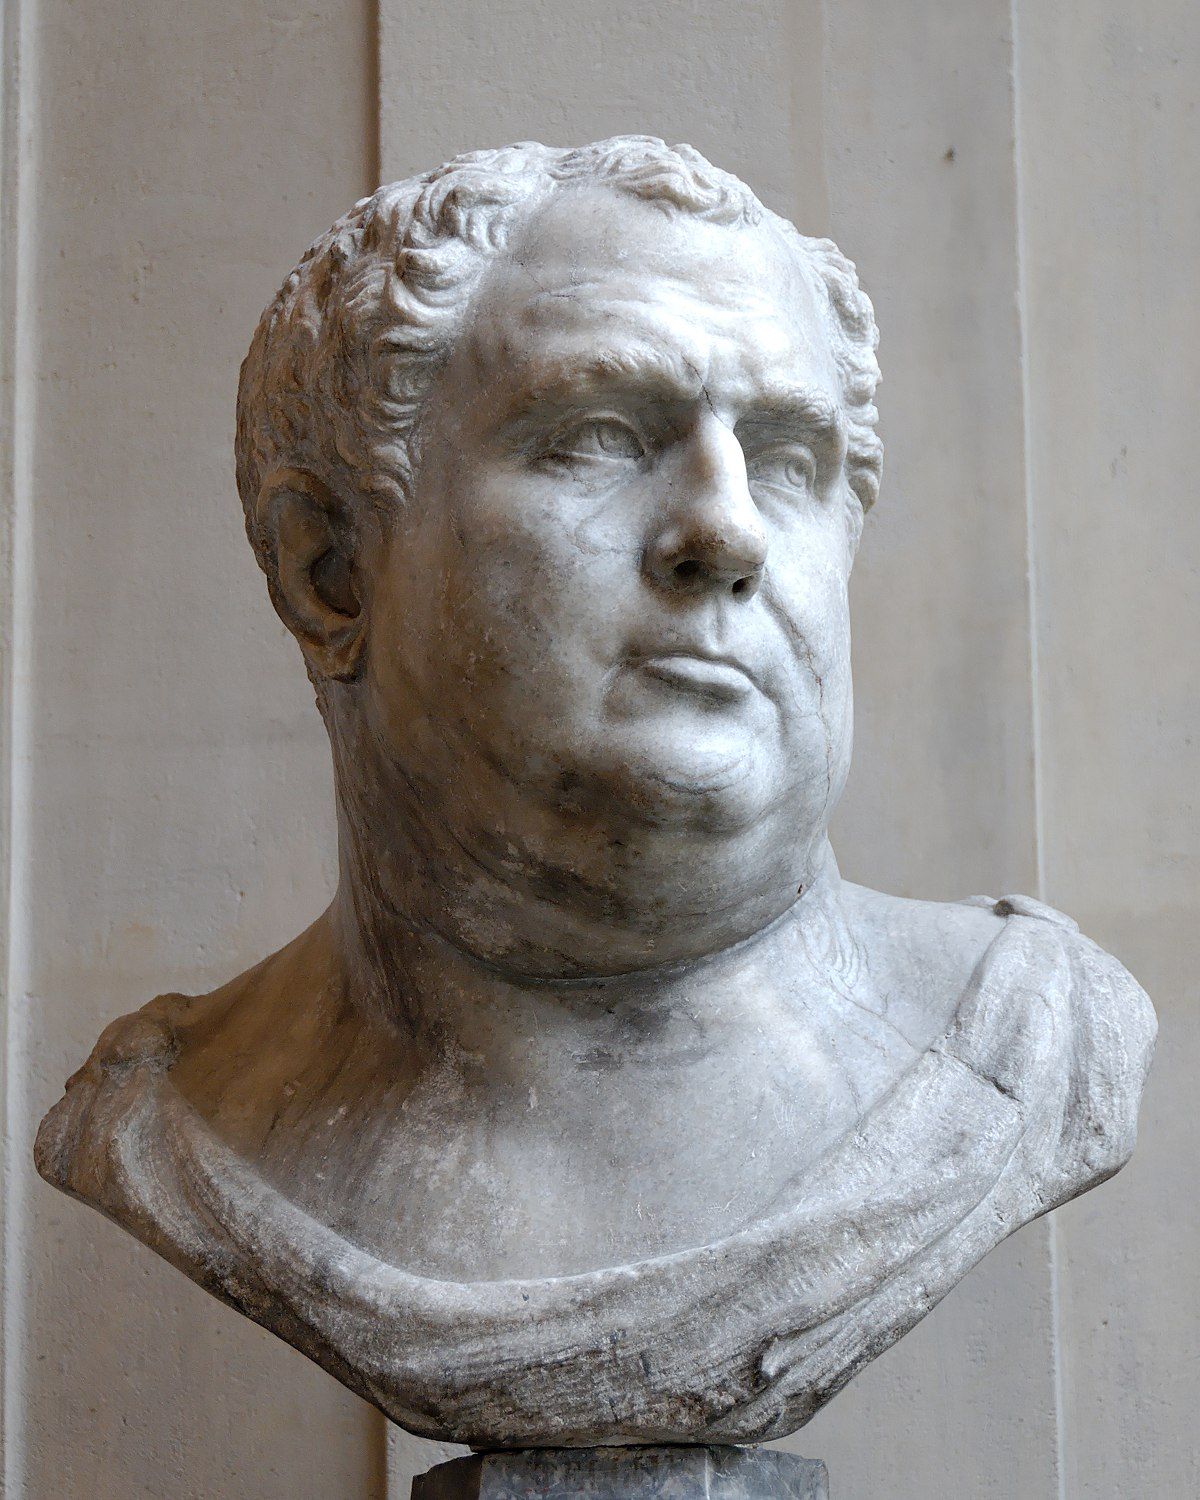 https://upload.wikimedia.org/wikipedia/commons/thumb/8/8d/Pseudo-Vitellius_Louvre_MR684.jpg/1200px-Pseudo-Vitellius_Louvre_MR684.jpg